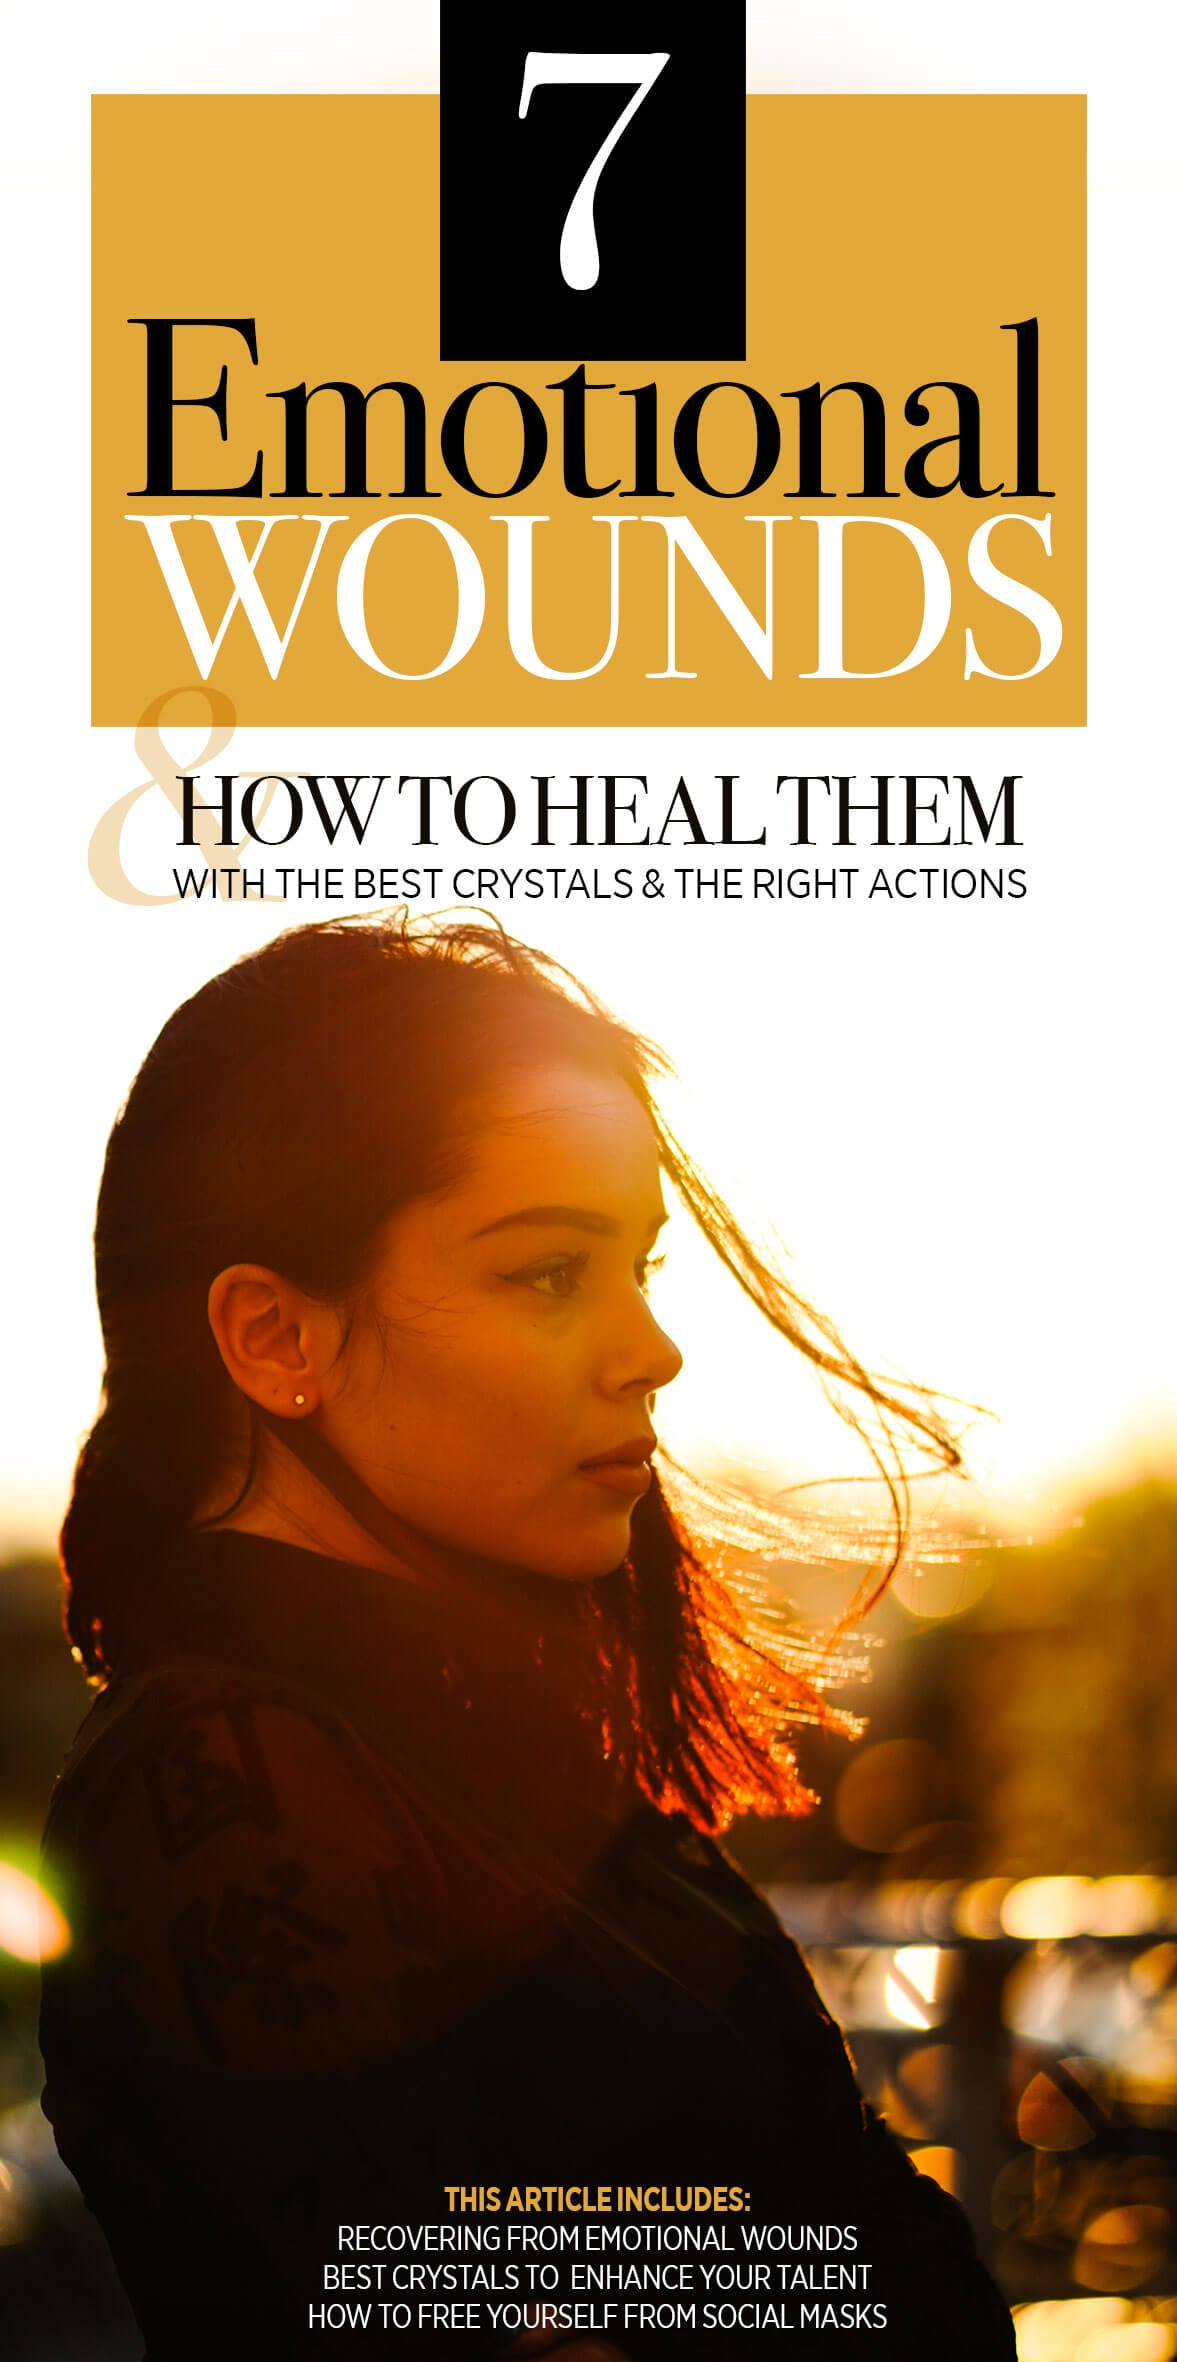 the seven emotional wounds and how to heal them